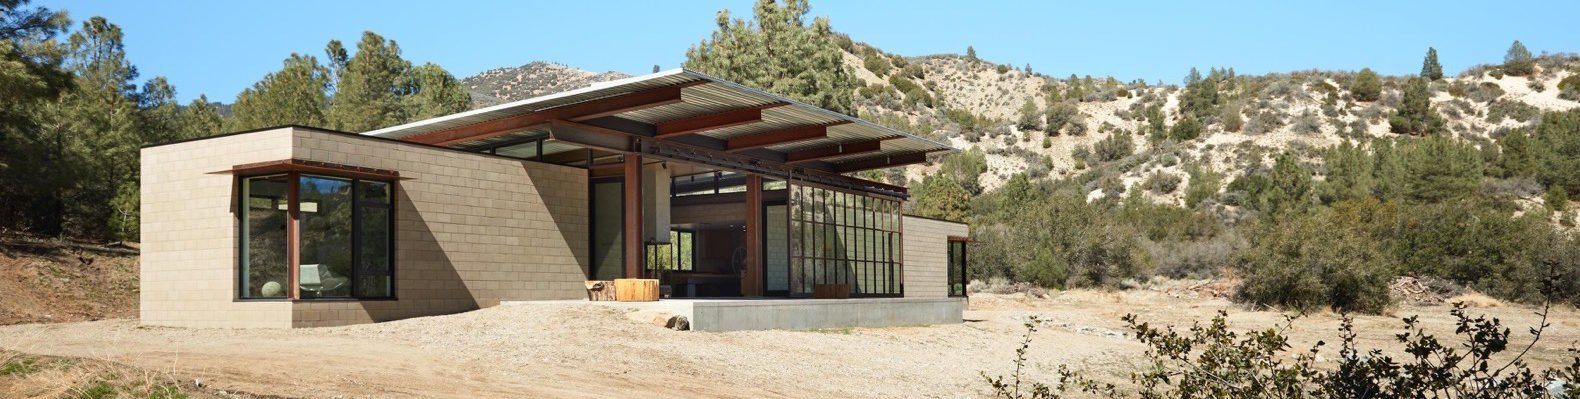 exterior view of net zero house in desert